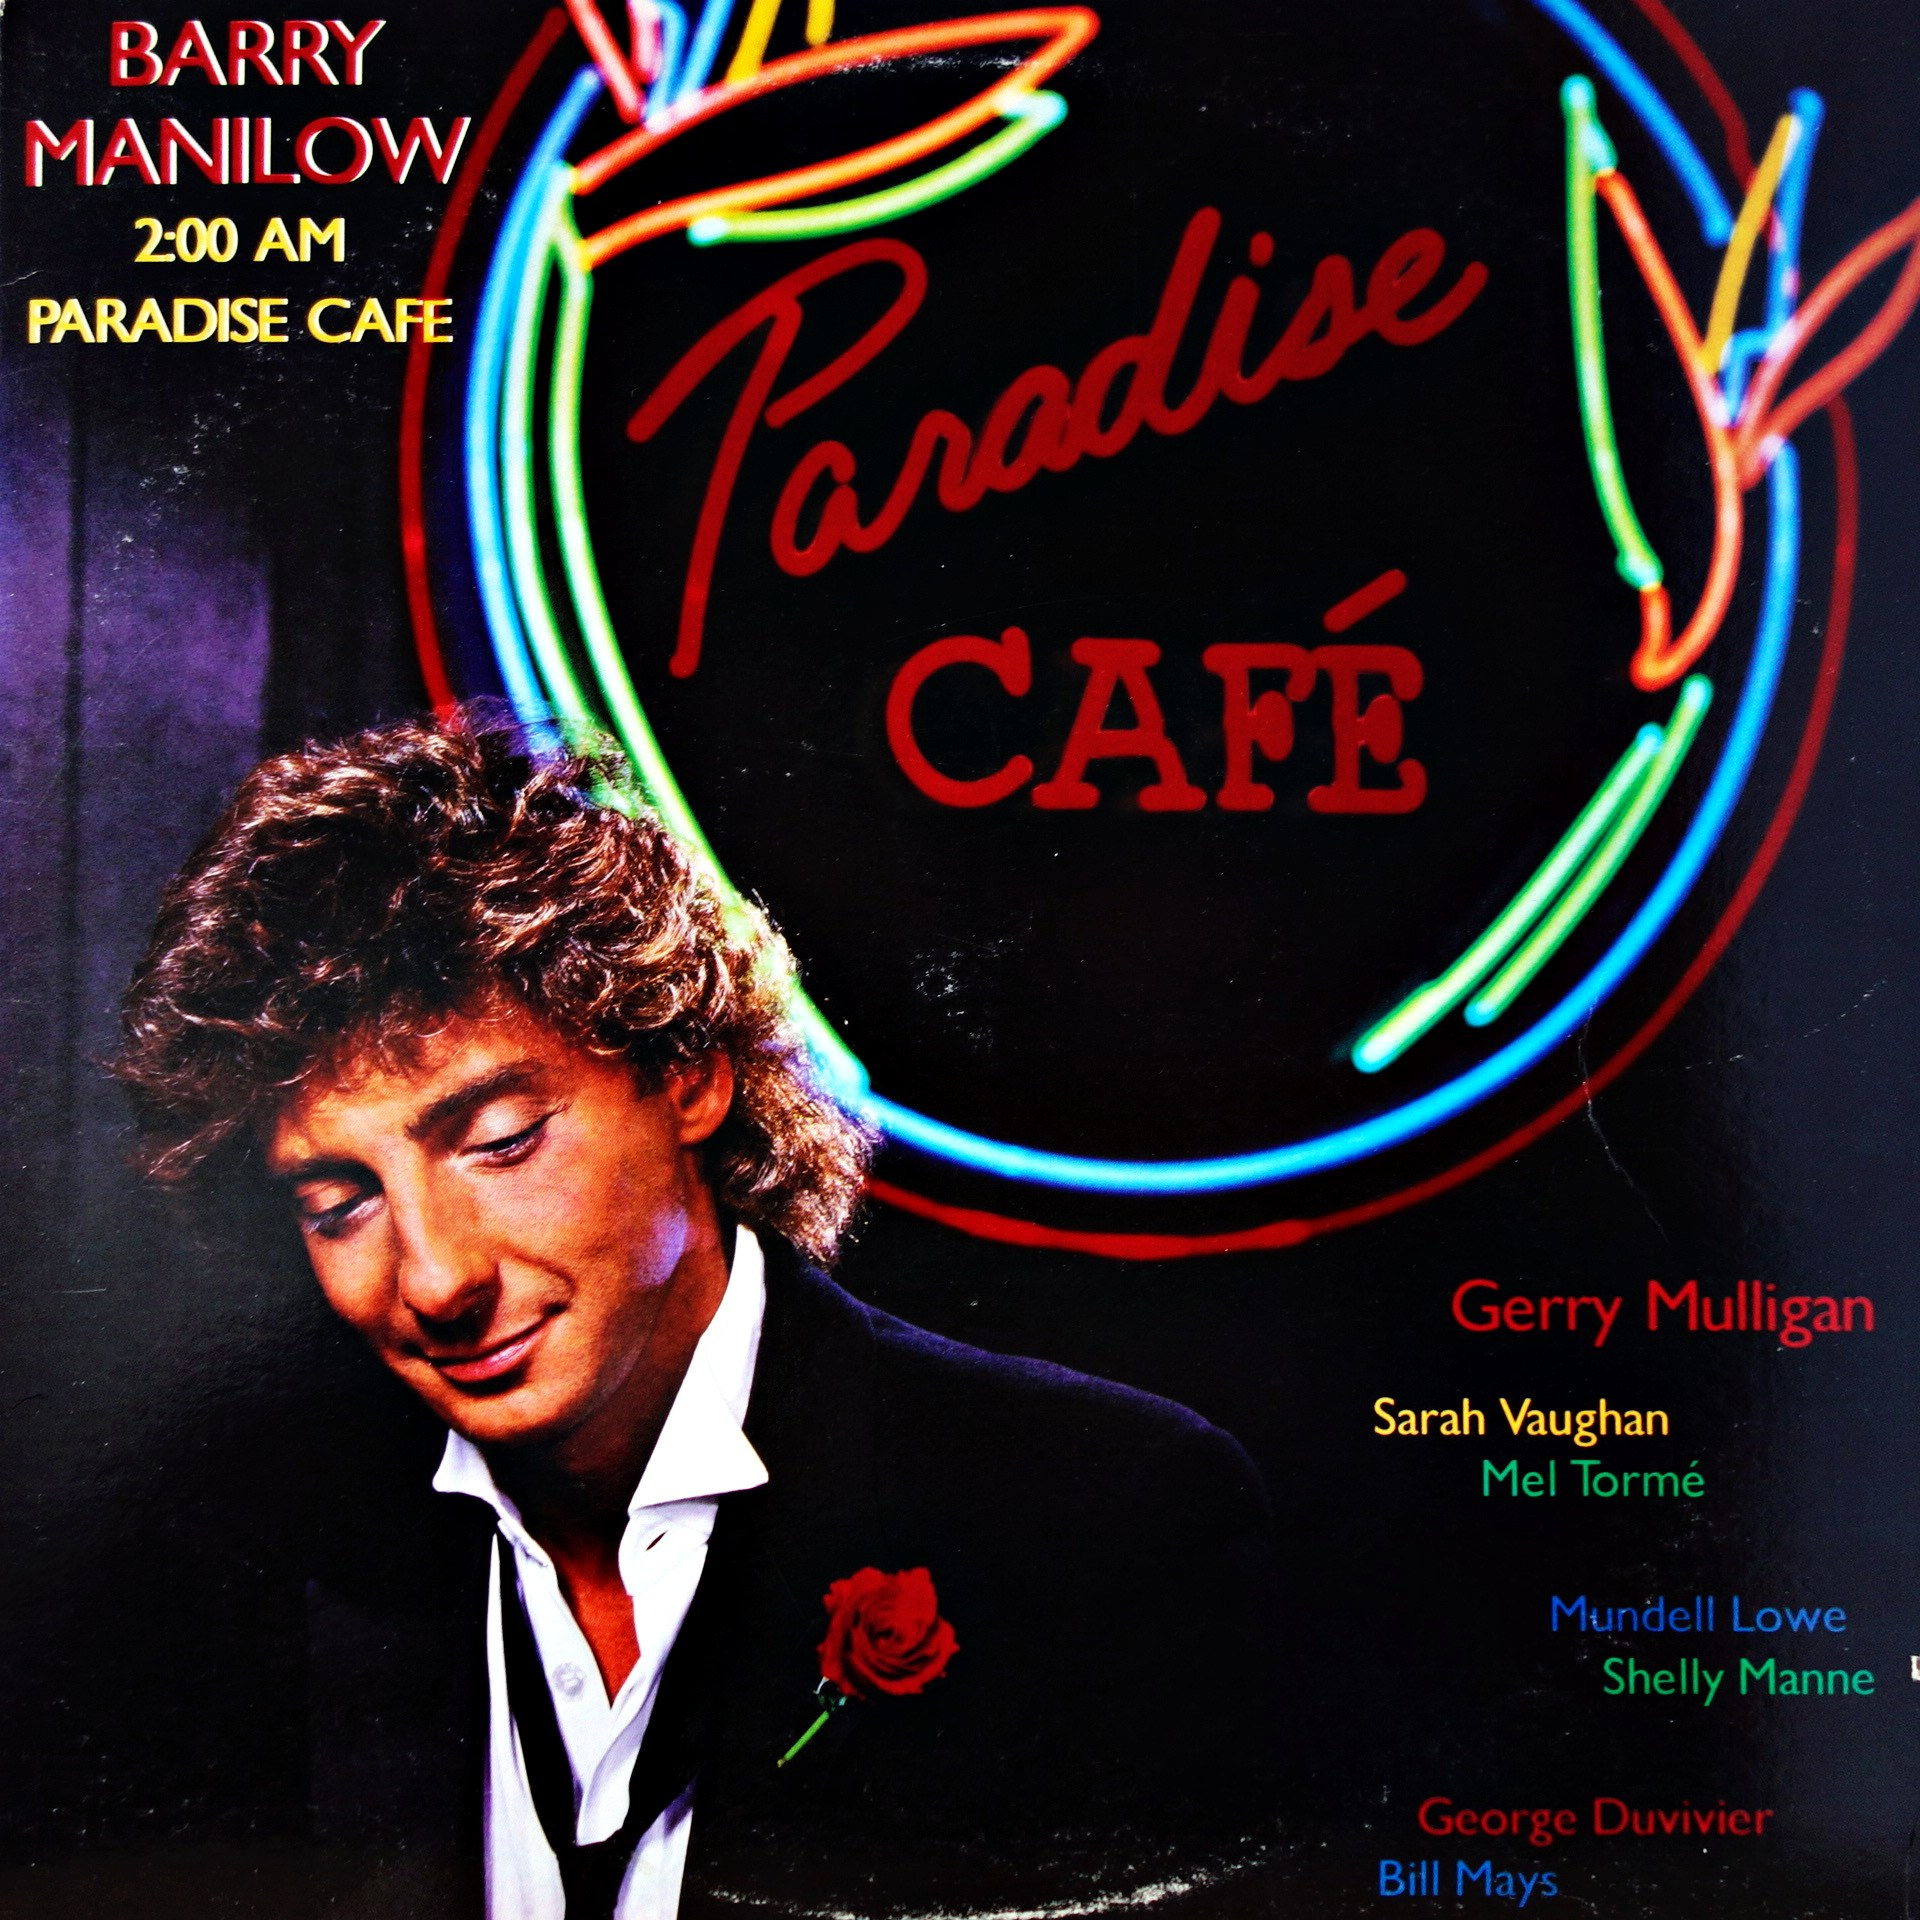 LP Barry Manilow ‎– 2:00 AM Paradise Cafe